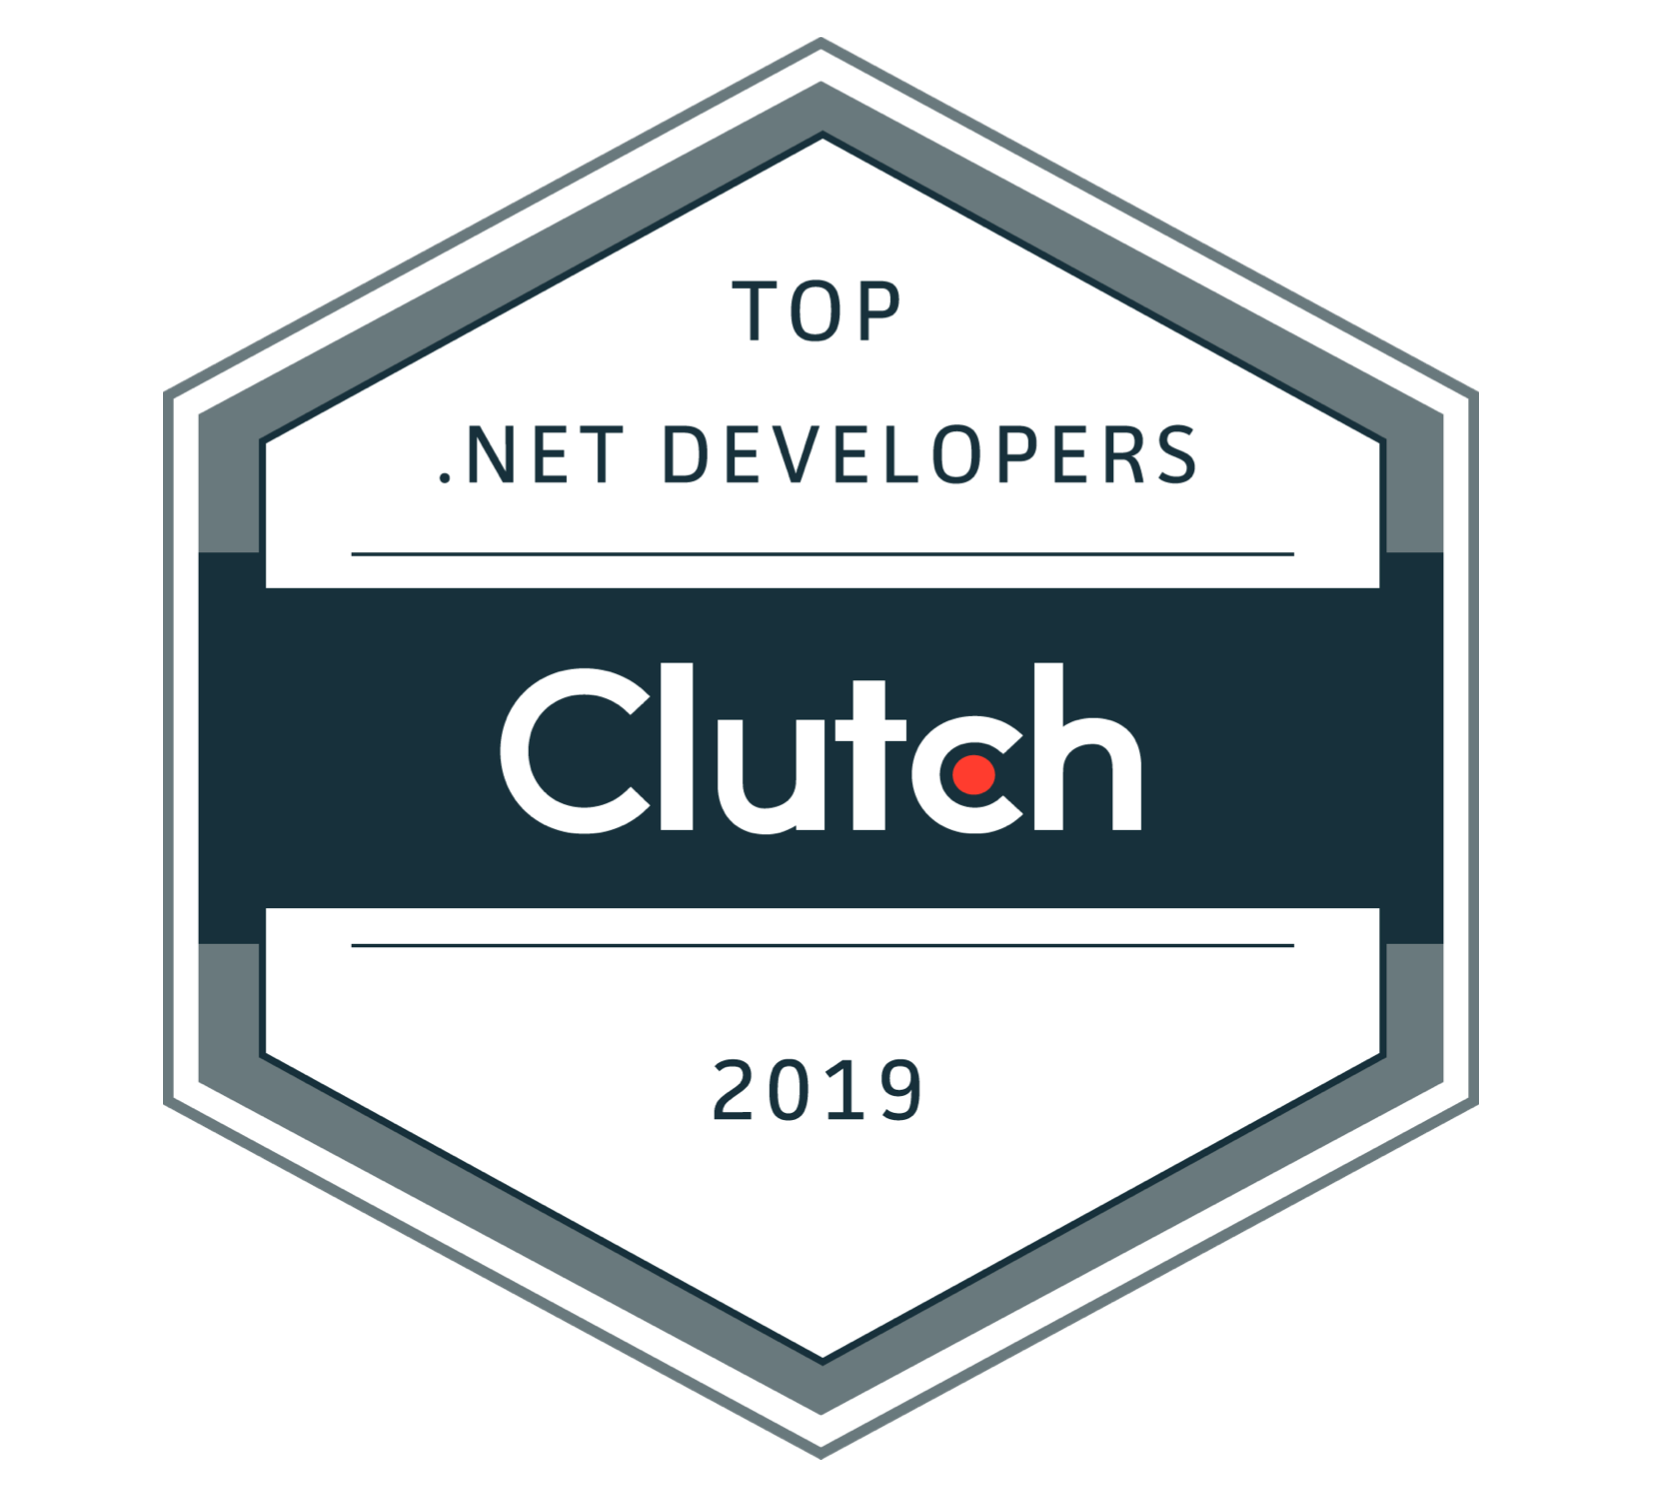 top .net developers clutch